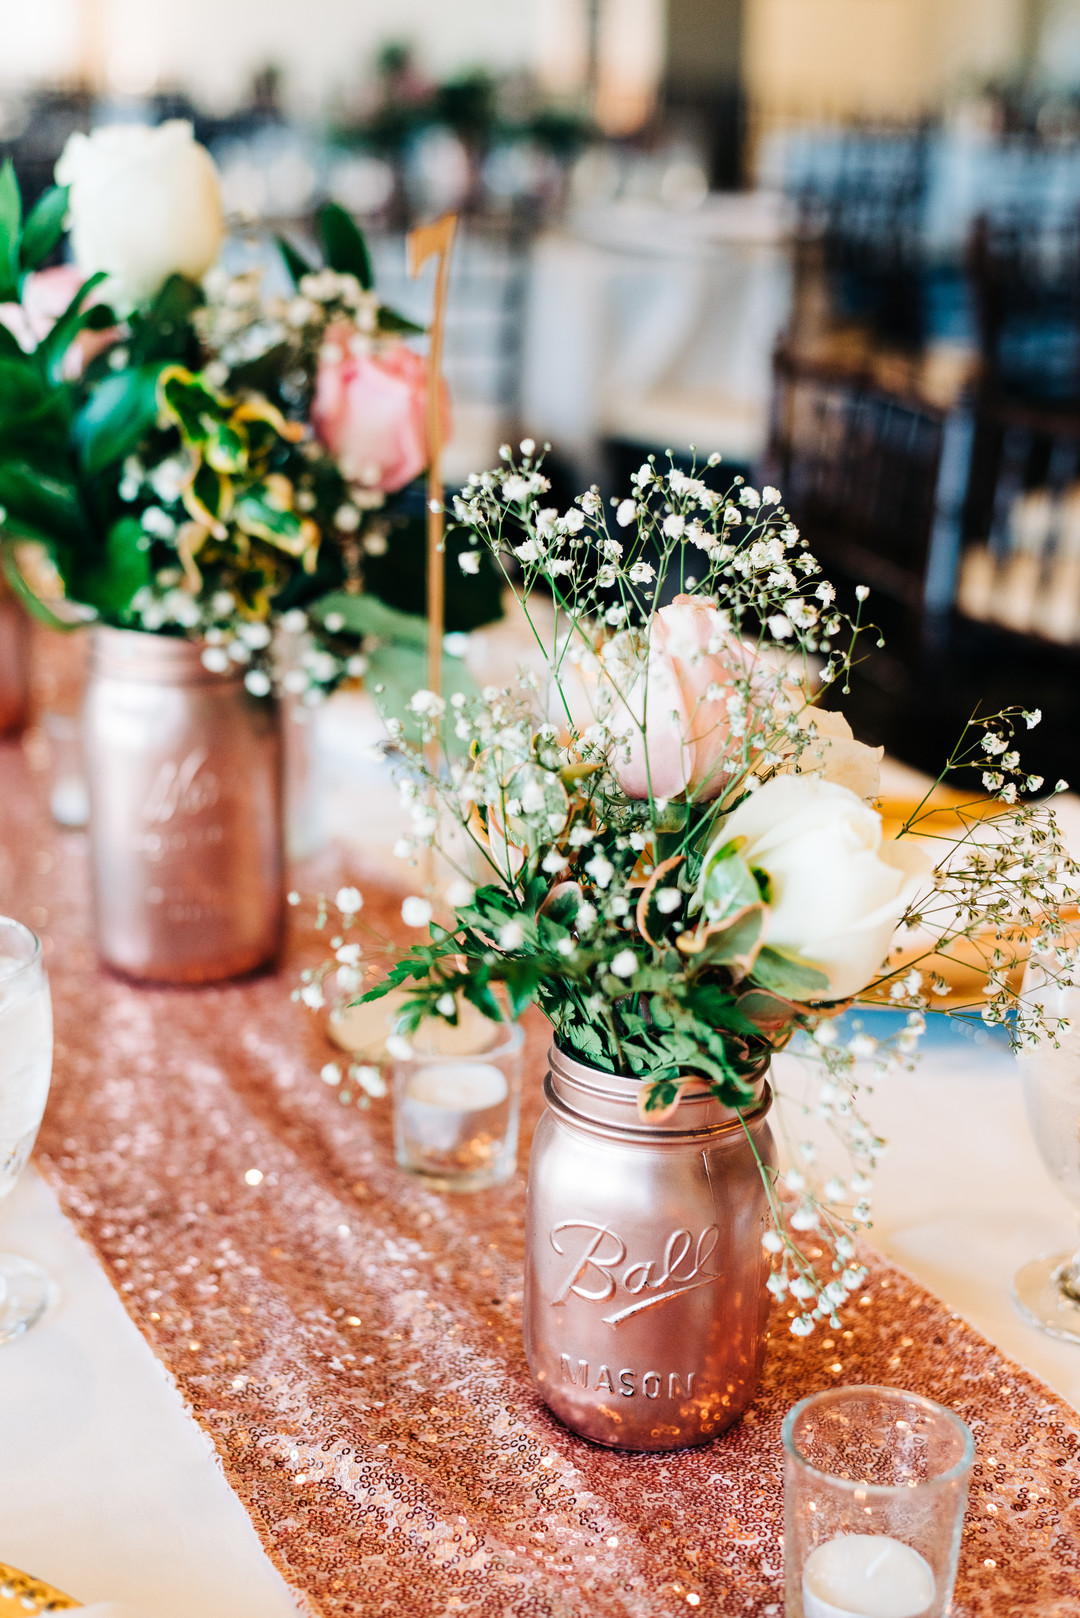 18th Birthday Party Decor Rose Gold Decorations Are Perfect For All Kinds Of Themes Check Out How